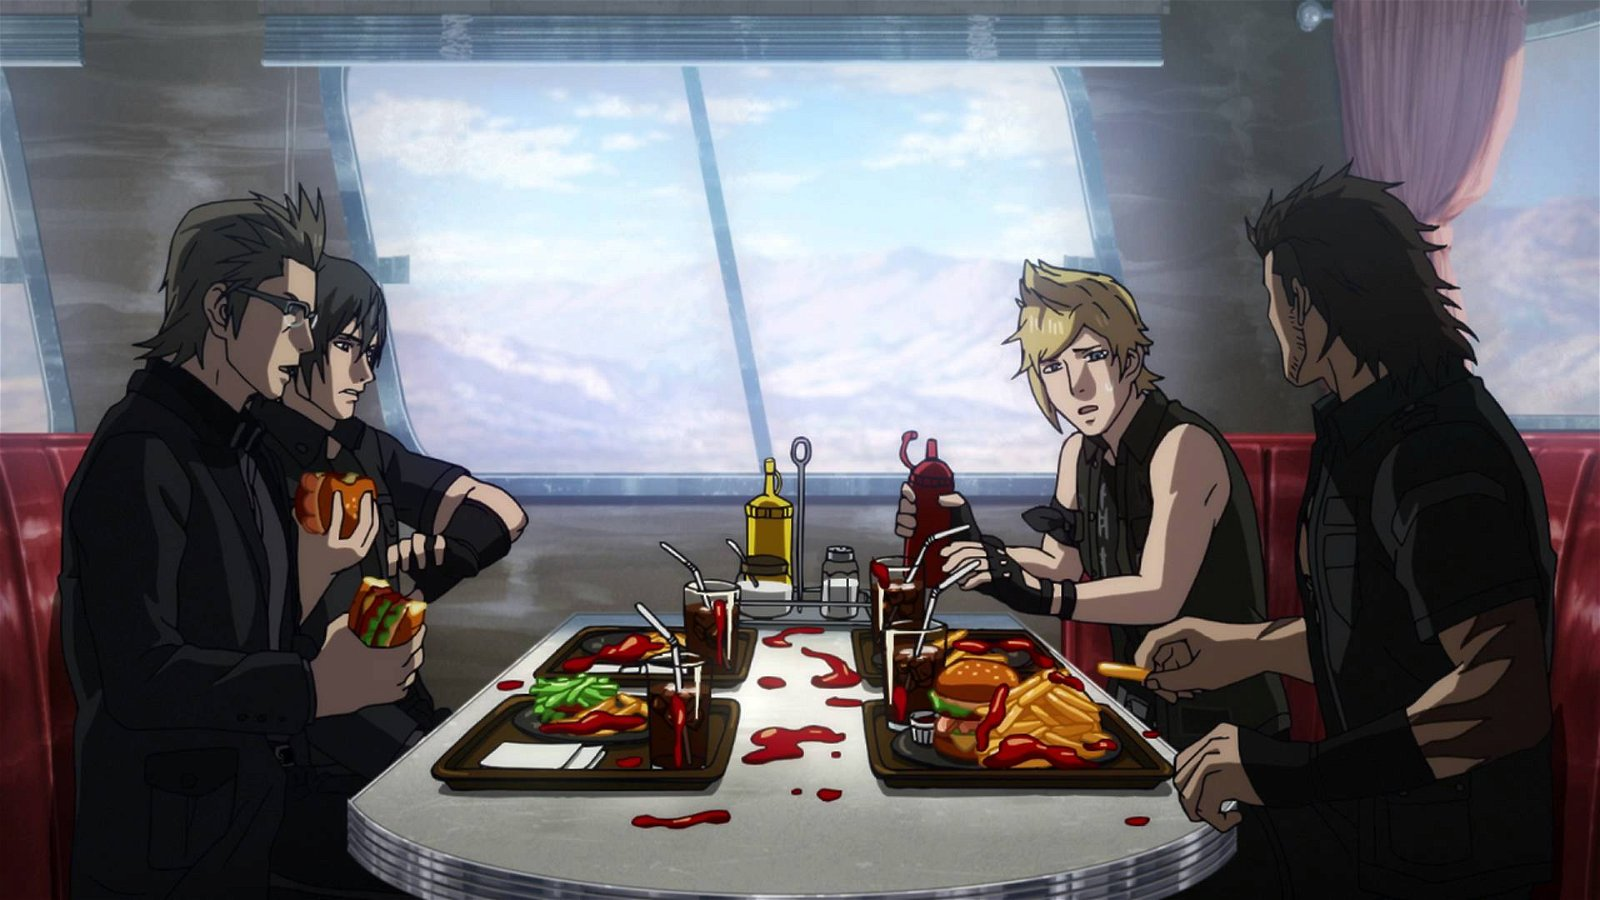 Square Enix Releases Fourth Episode of Brotherhood: Final Fantasy XV Anime